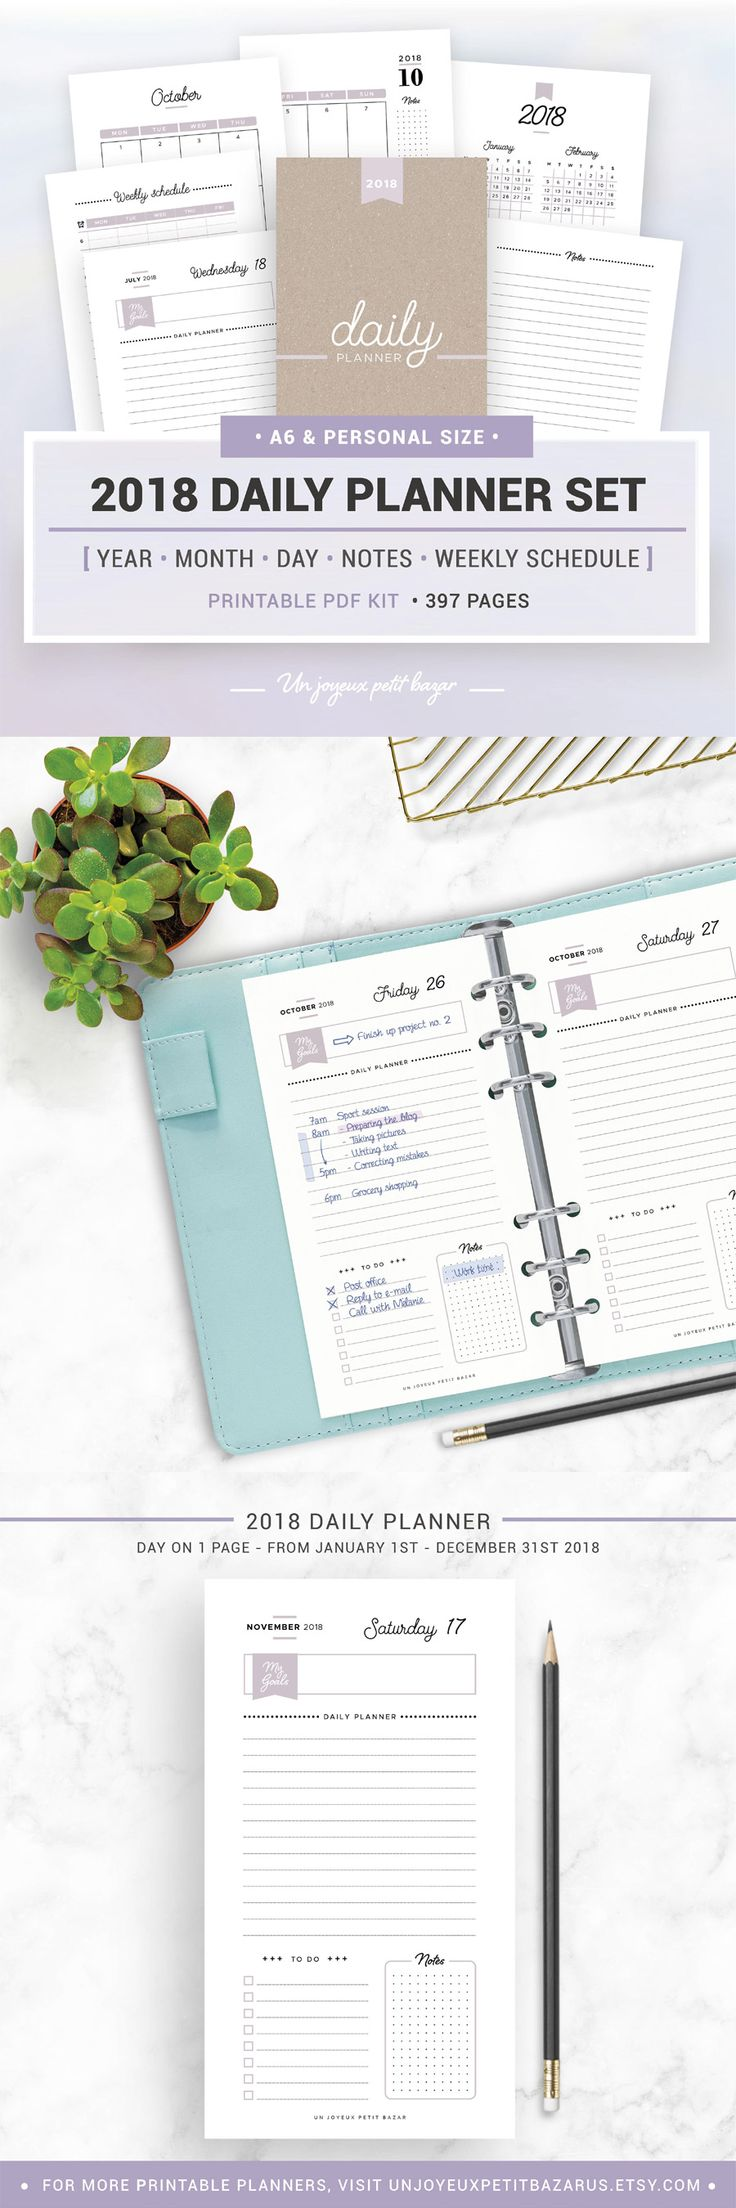 Printable Daily Planner 2018 - stop overwhelm and get into action with this cute planner set - includes: 2018 yearly calendar - Monday and Sunday start versions, monthly calendar 2018, daily planner, weekly schedule, note pages. Available for instant download. #ad #etsy #printable